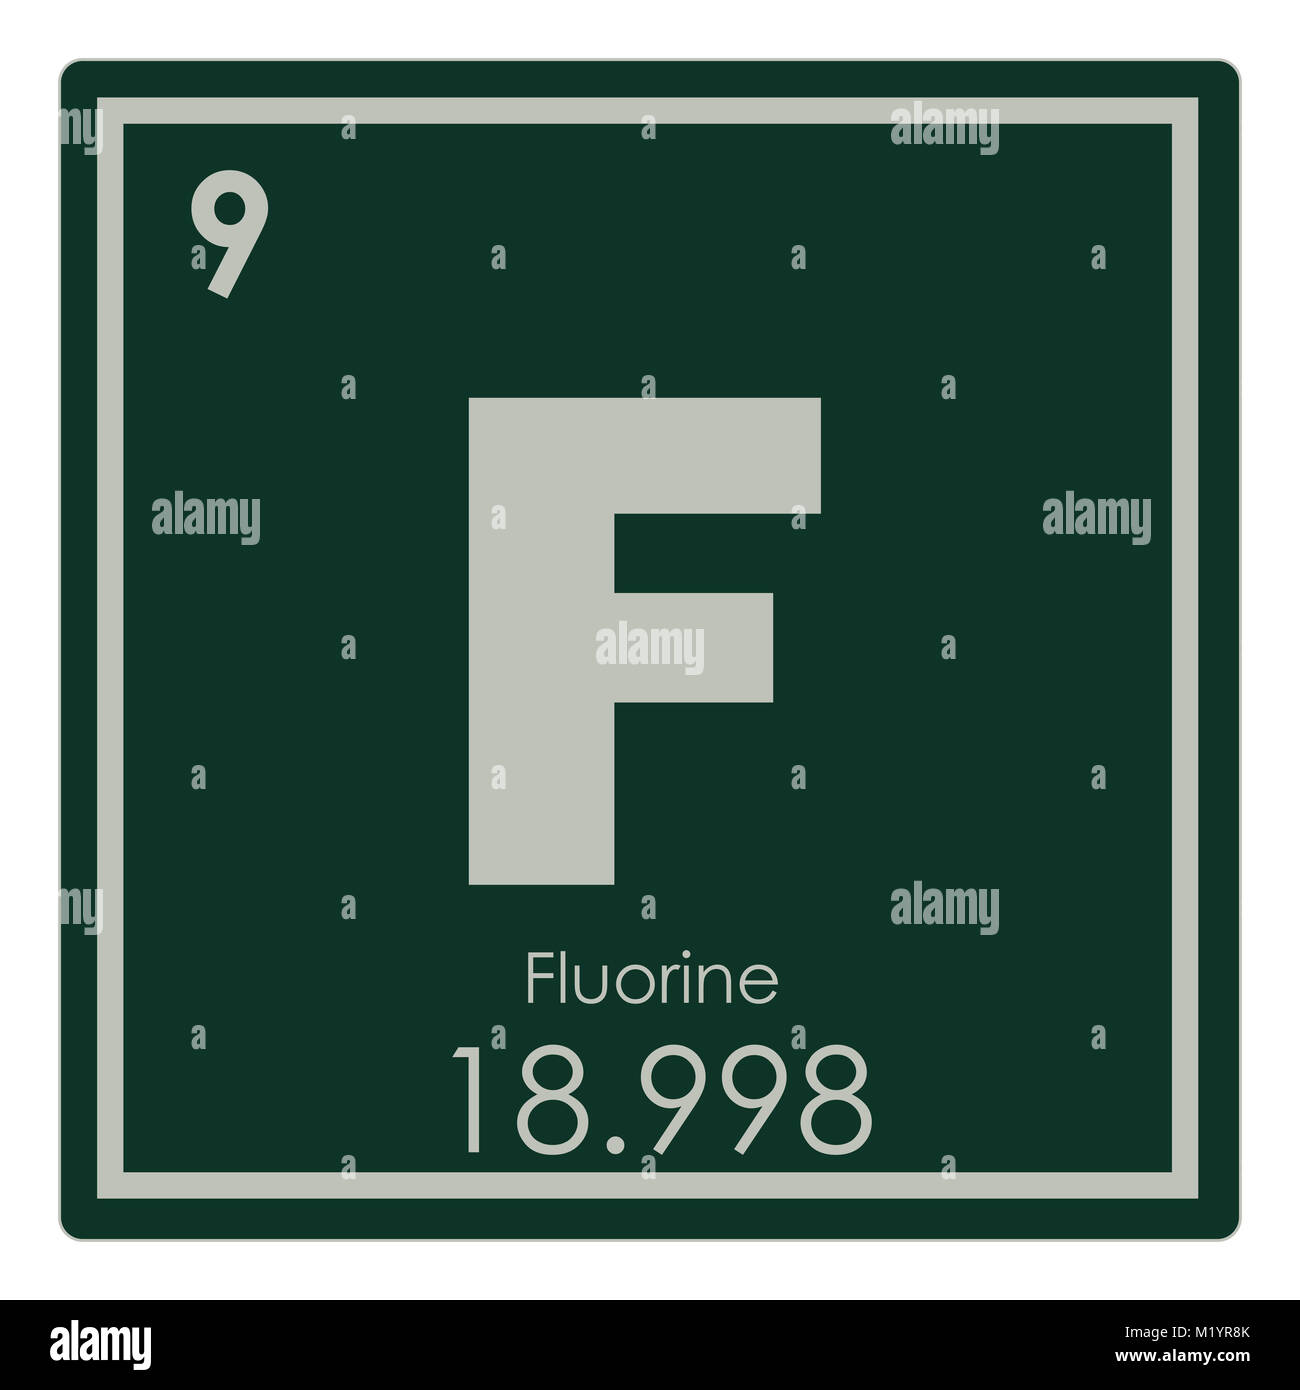 Fluorine Chemical Element Periodic Table Science Symbol Stock Photo